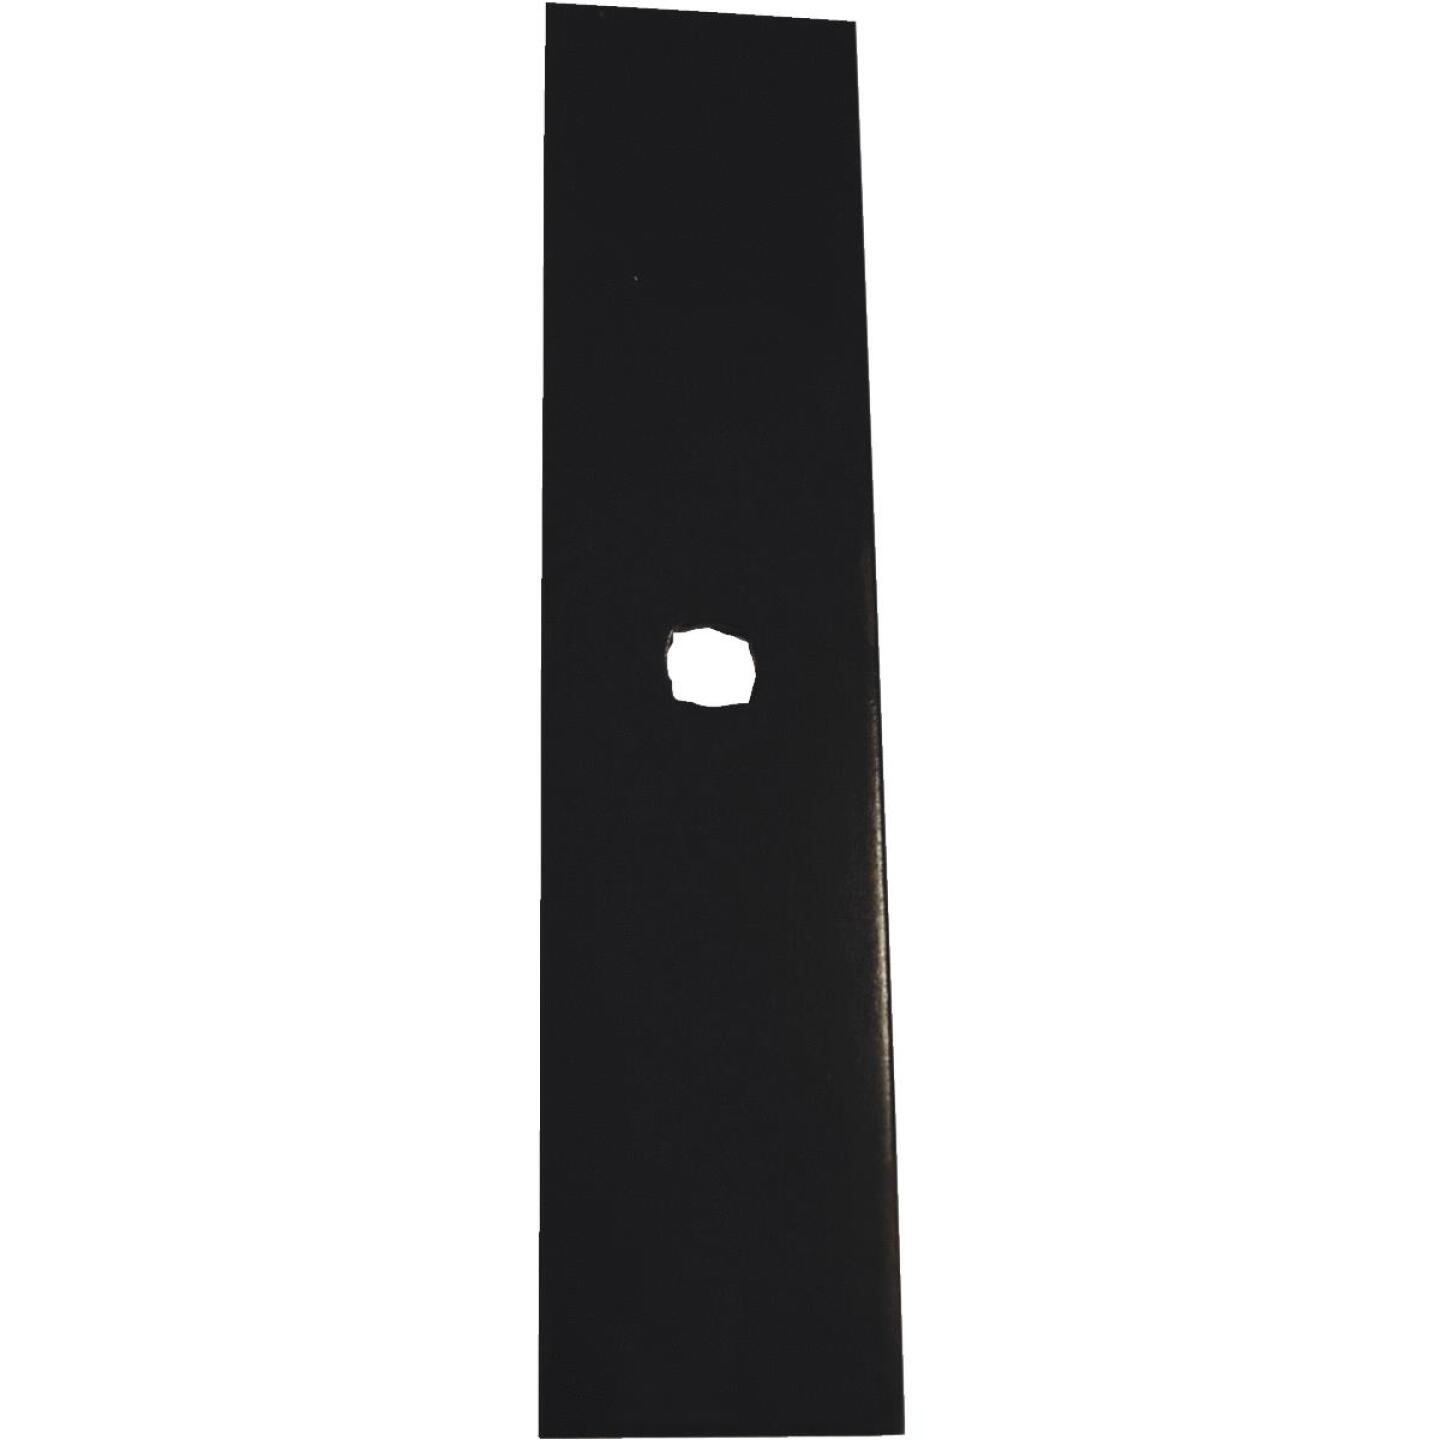 Arnold King-O-Lawn Carbon Steel Replacement Edger Blade Image 1